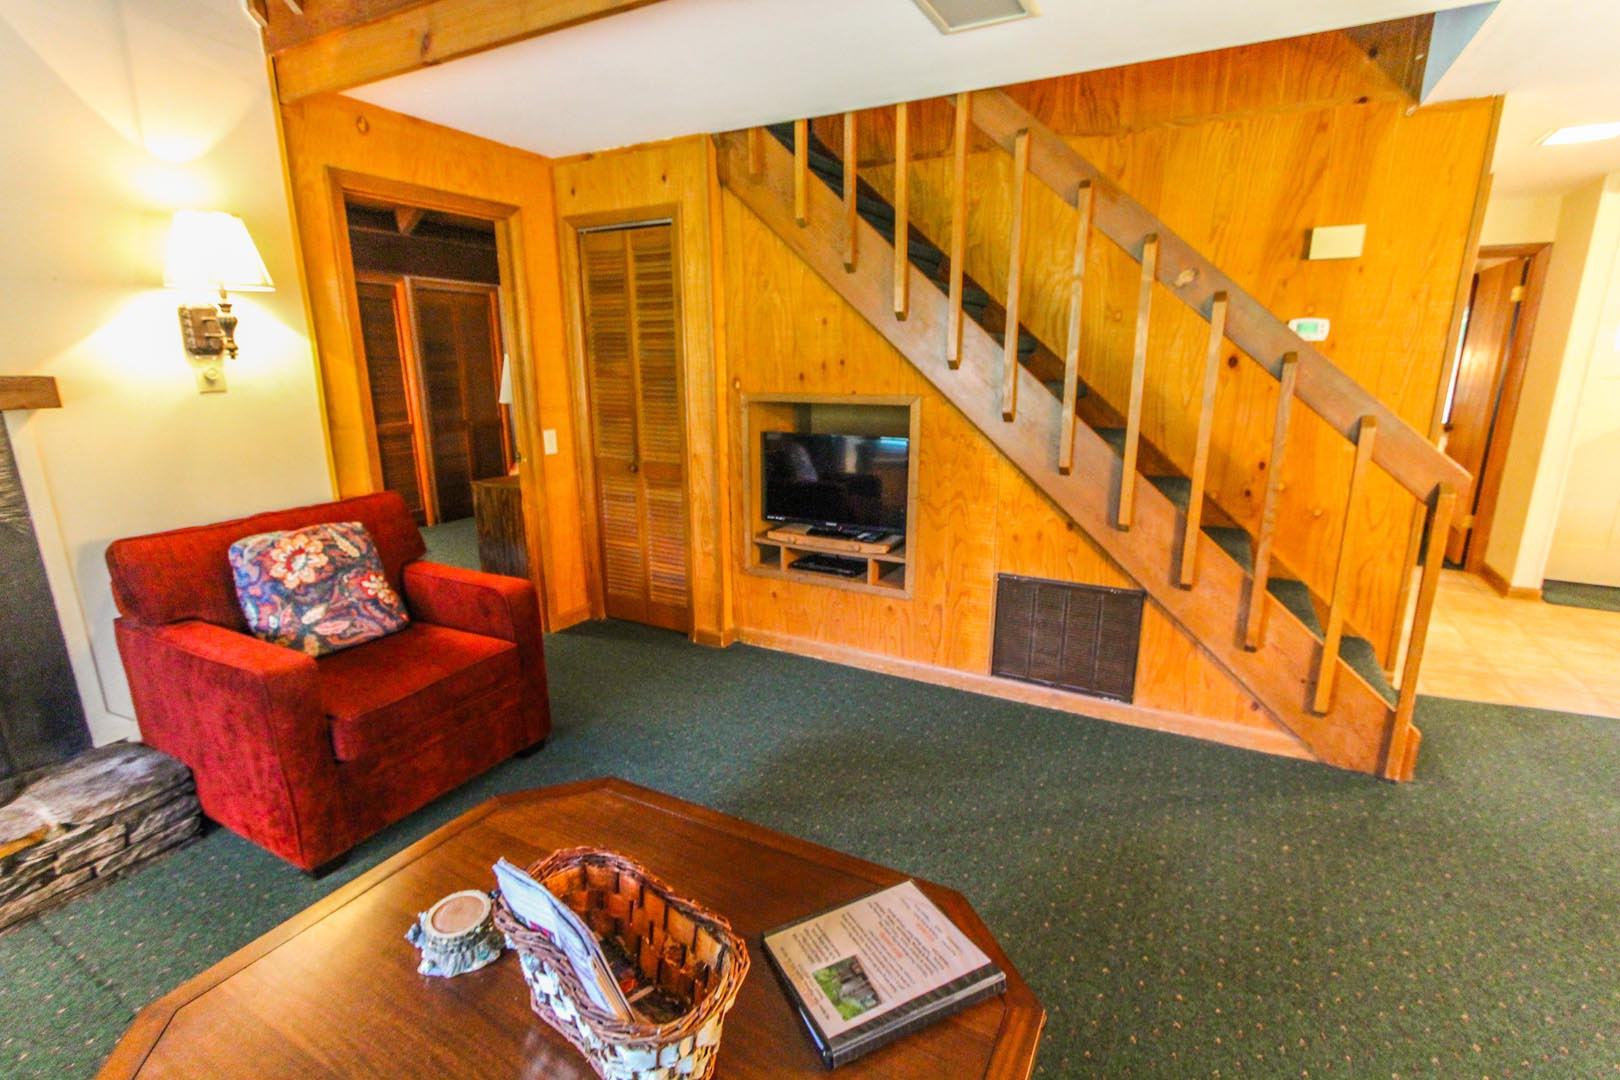 The living room and stairs to the bedrooms at VRI's Golf Club Villas in Marble Hill, Georgia.